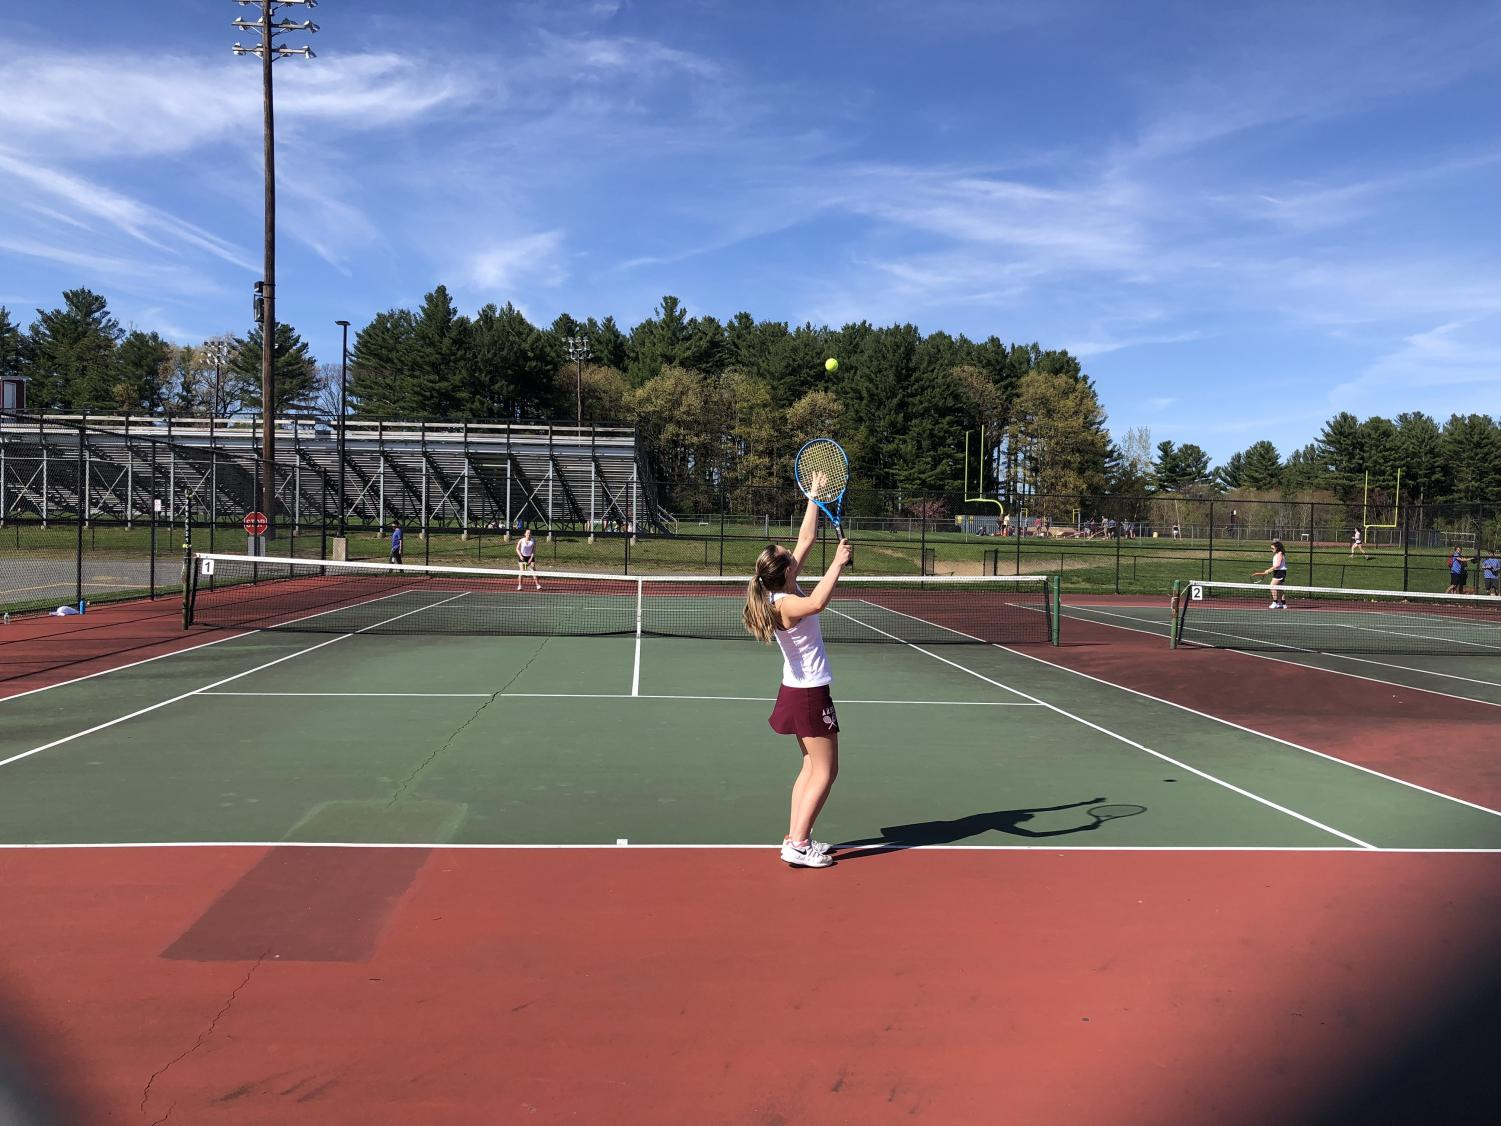 Freshman Olivia Almy delivers a dynamic serve against Marlborough opponent Marissa Petty in the first singles tennis match on May 6.